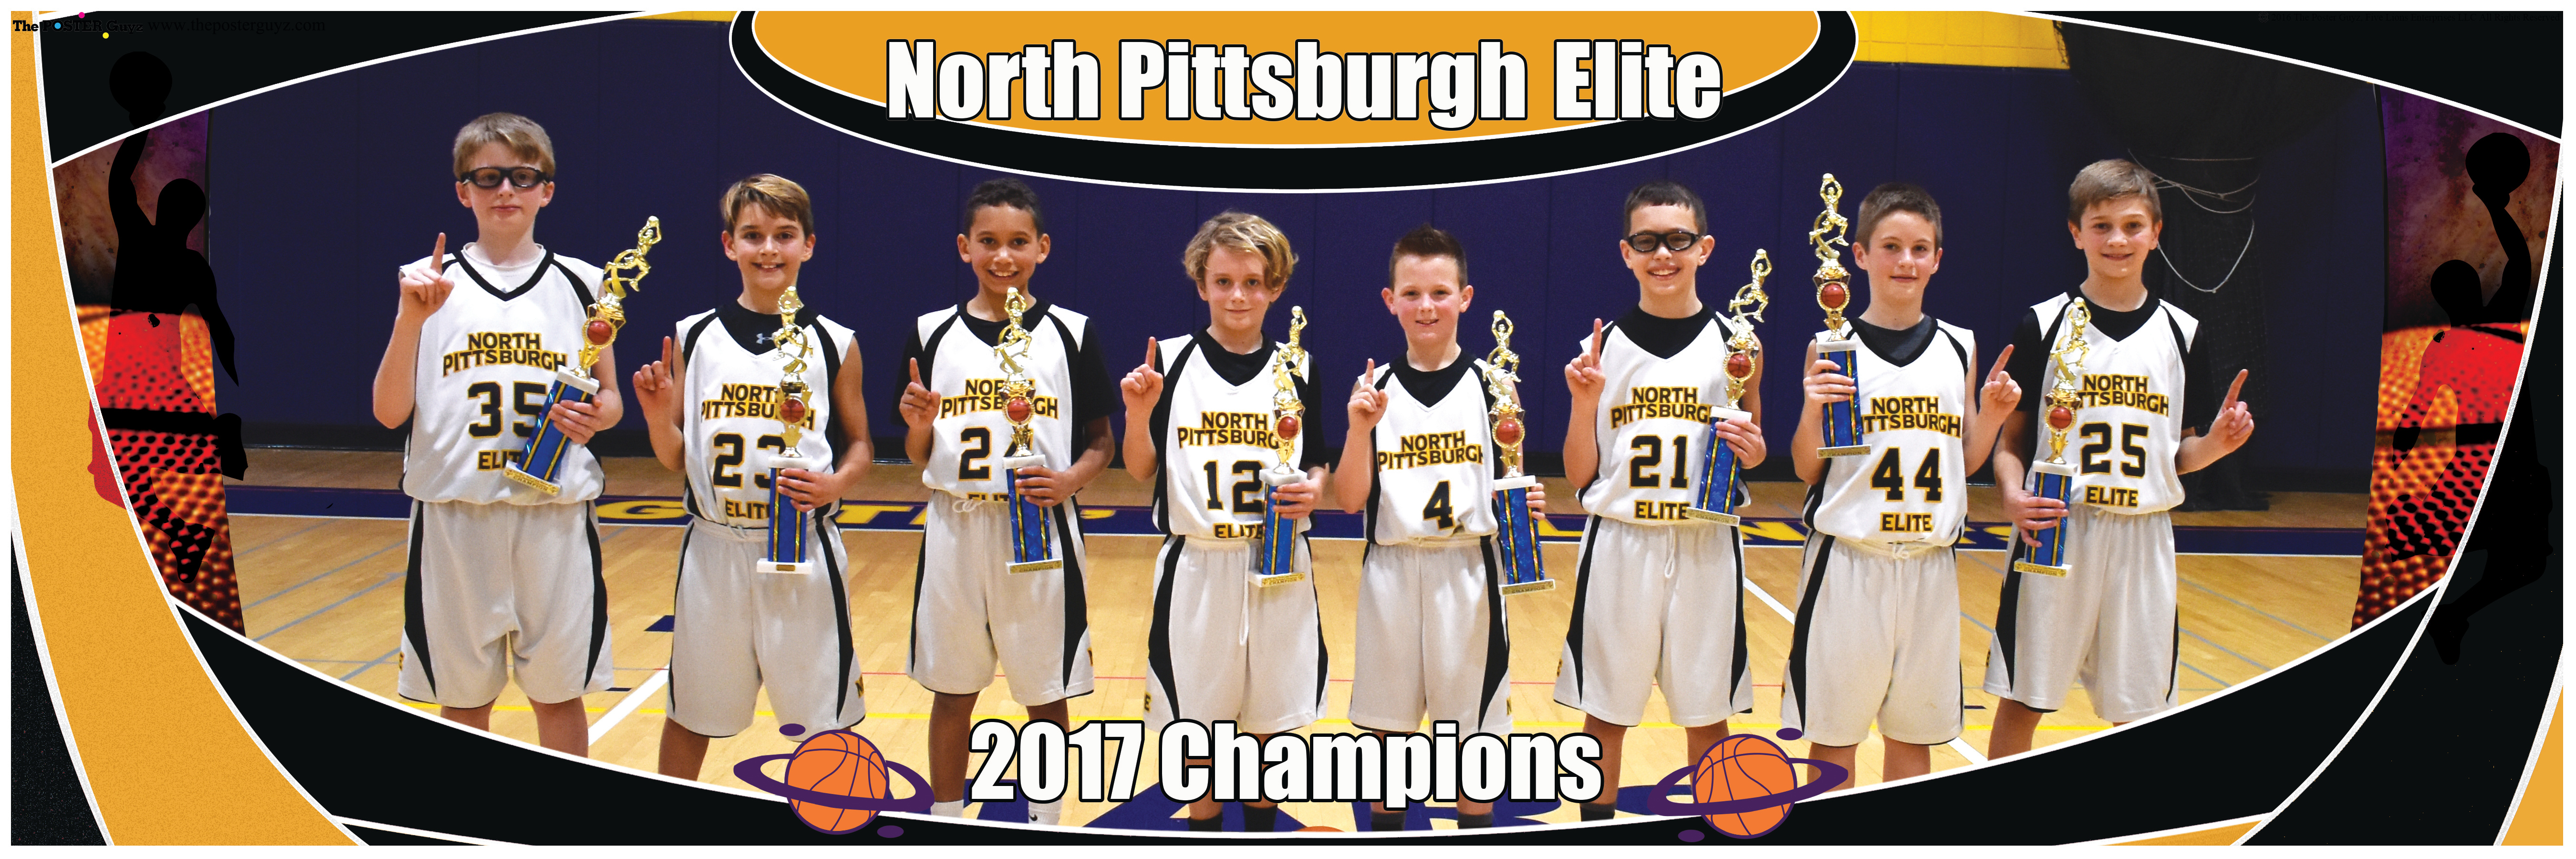 North Pittsburgh Elite champs